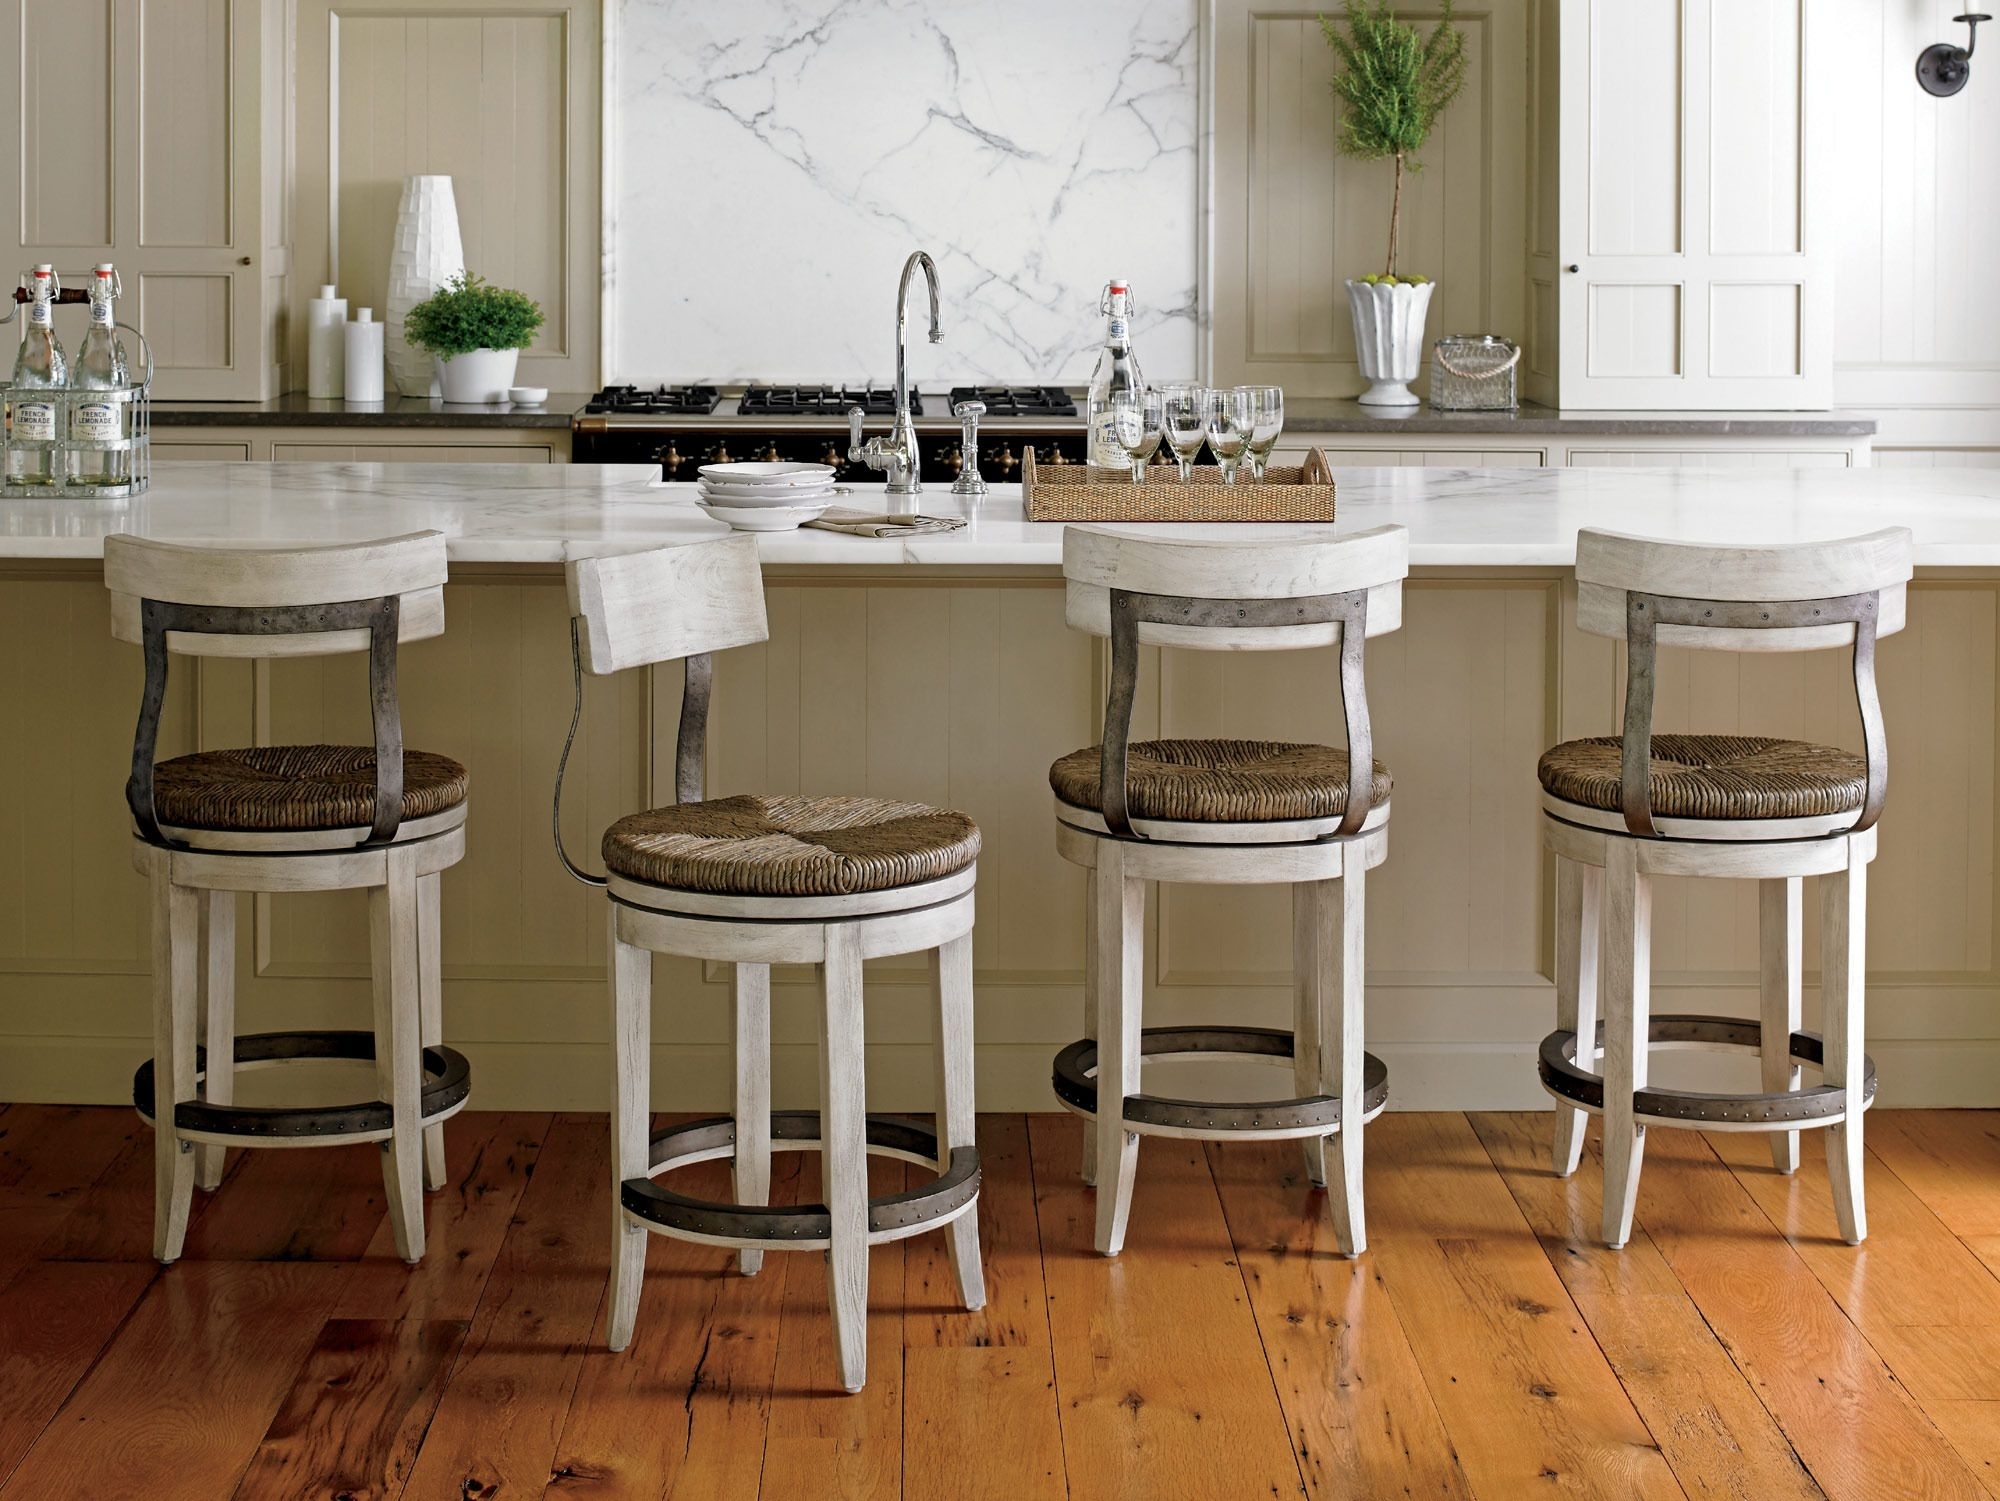 Kitchen : Awesome Kitchen Counter Bar Stool Ideas With .